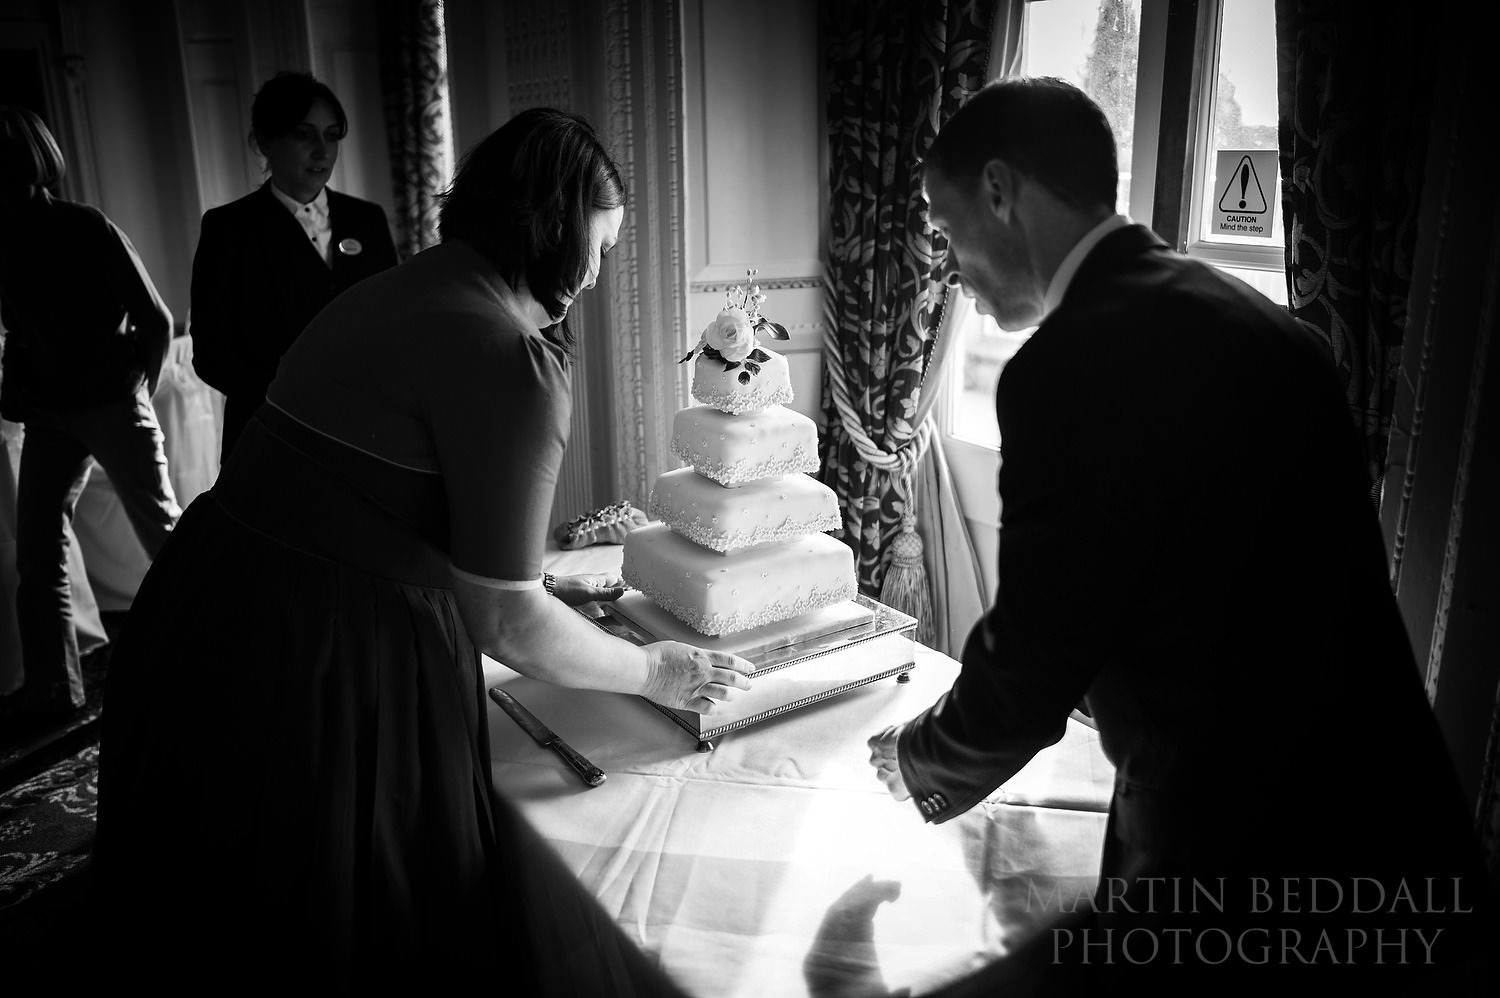 Setting up the wedding cake at Buxted Park wedding